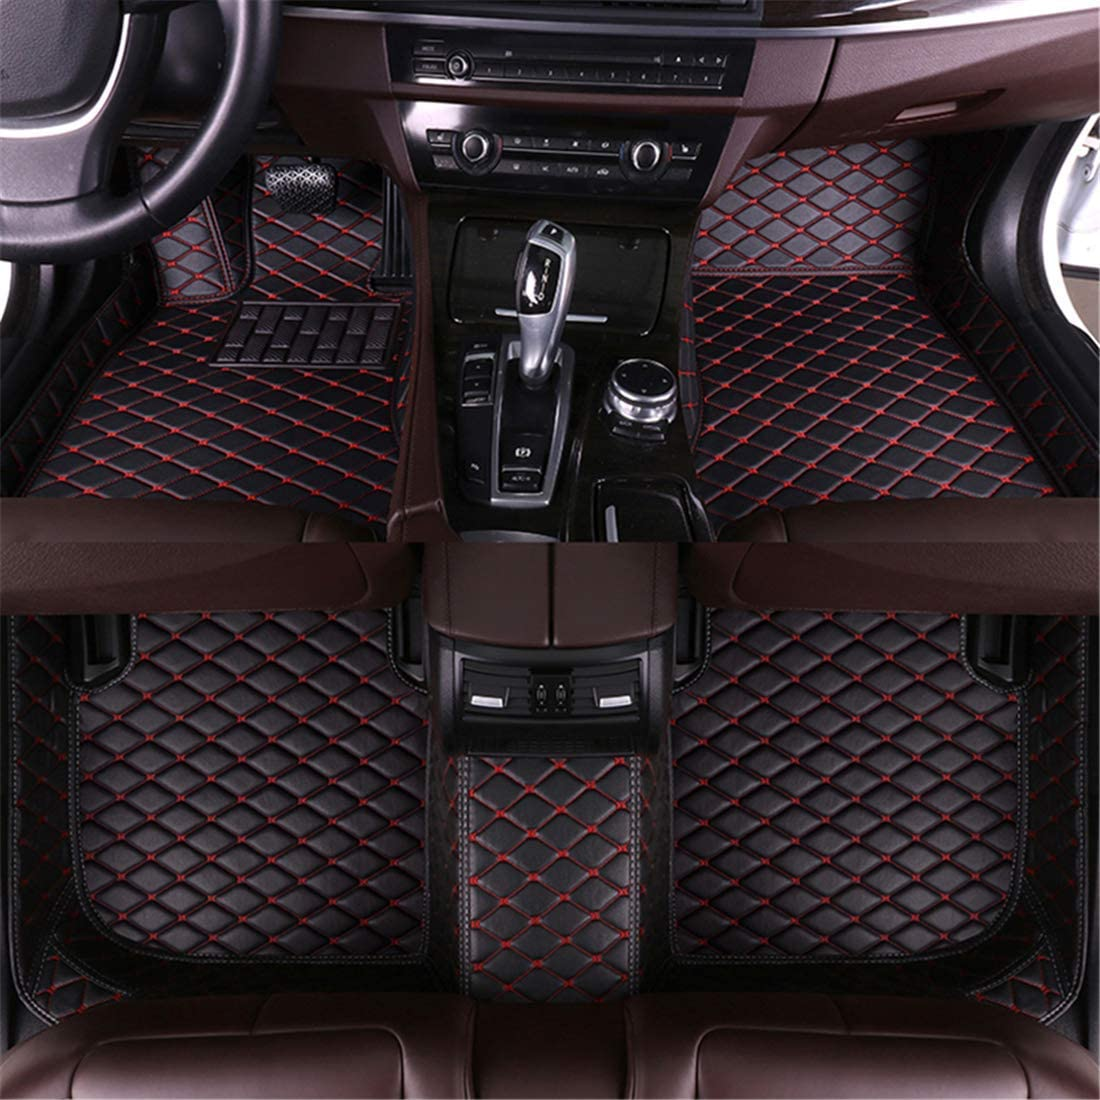 Muchkey car Floor Mats Ranking TOP10 fit for Cove Full Charger Al sold out. Dodge 2014-2016